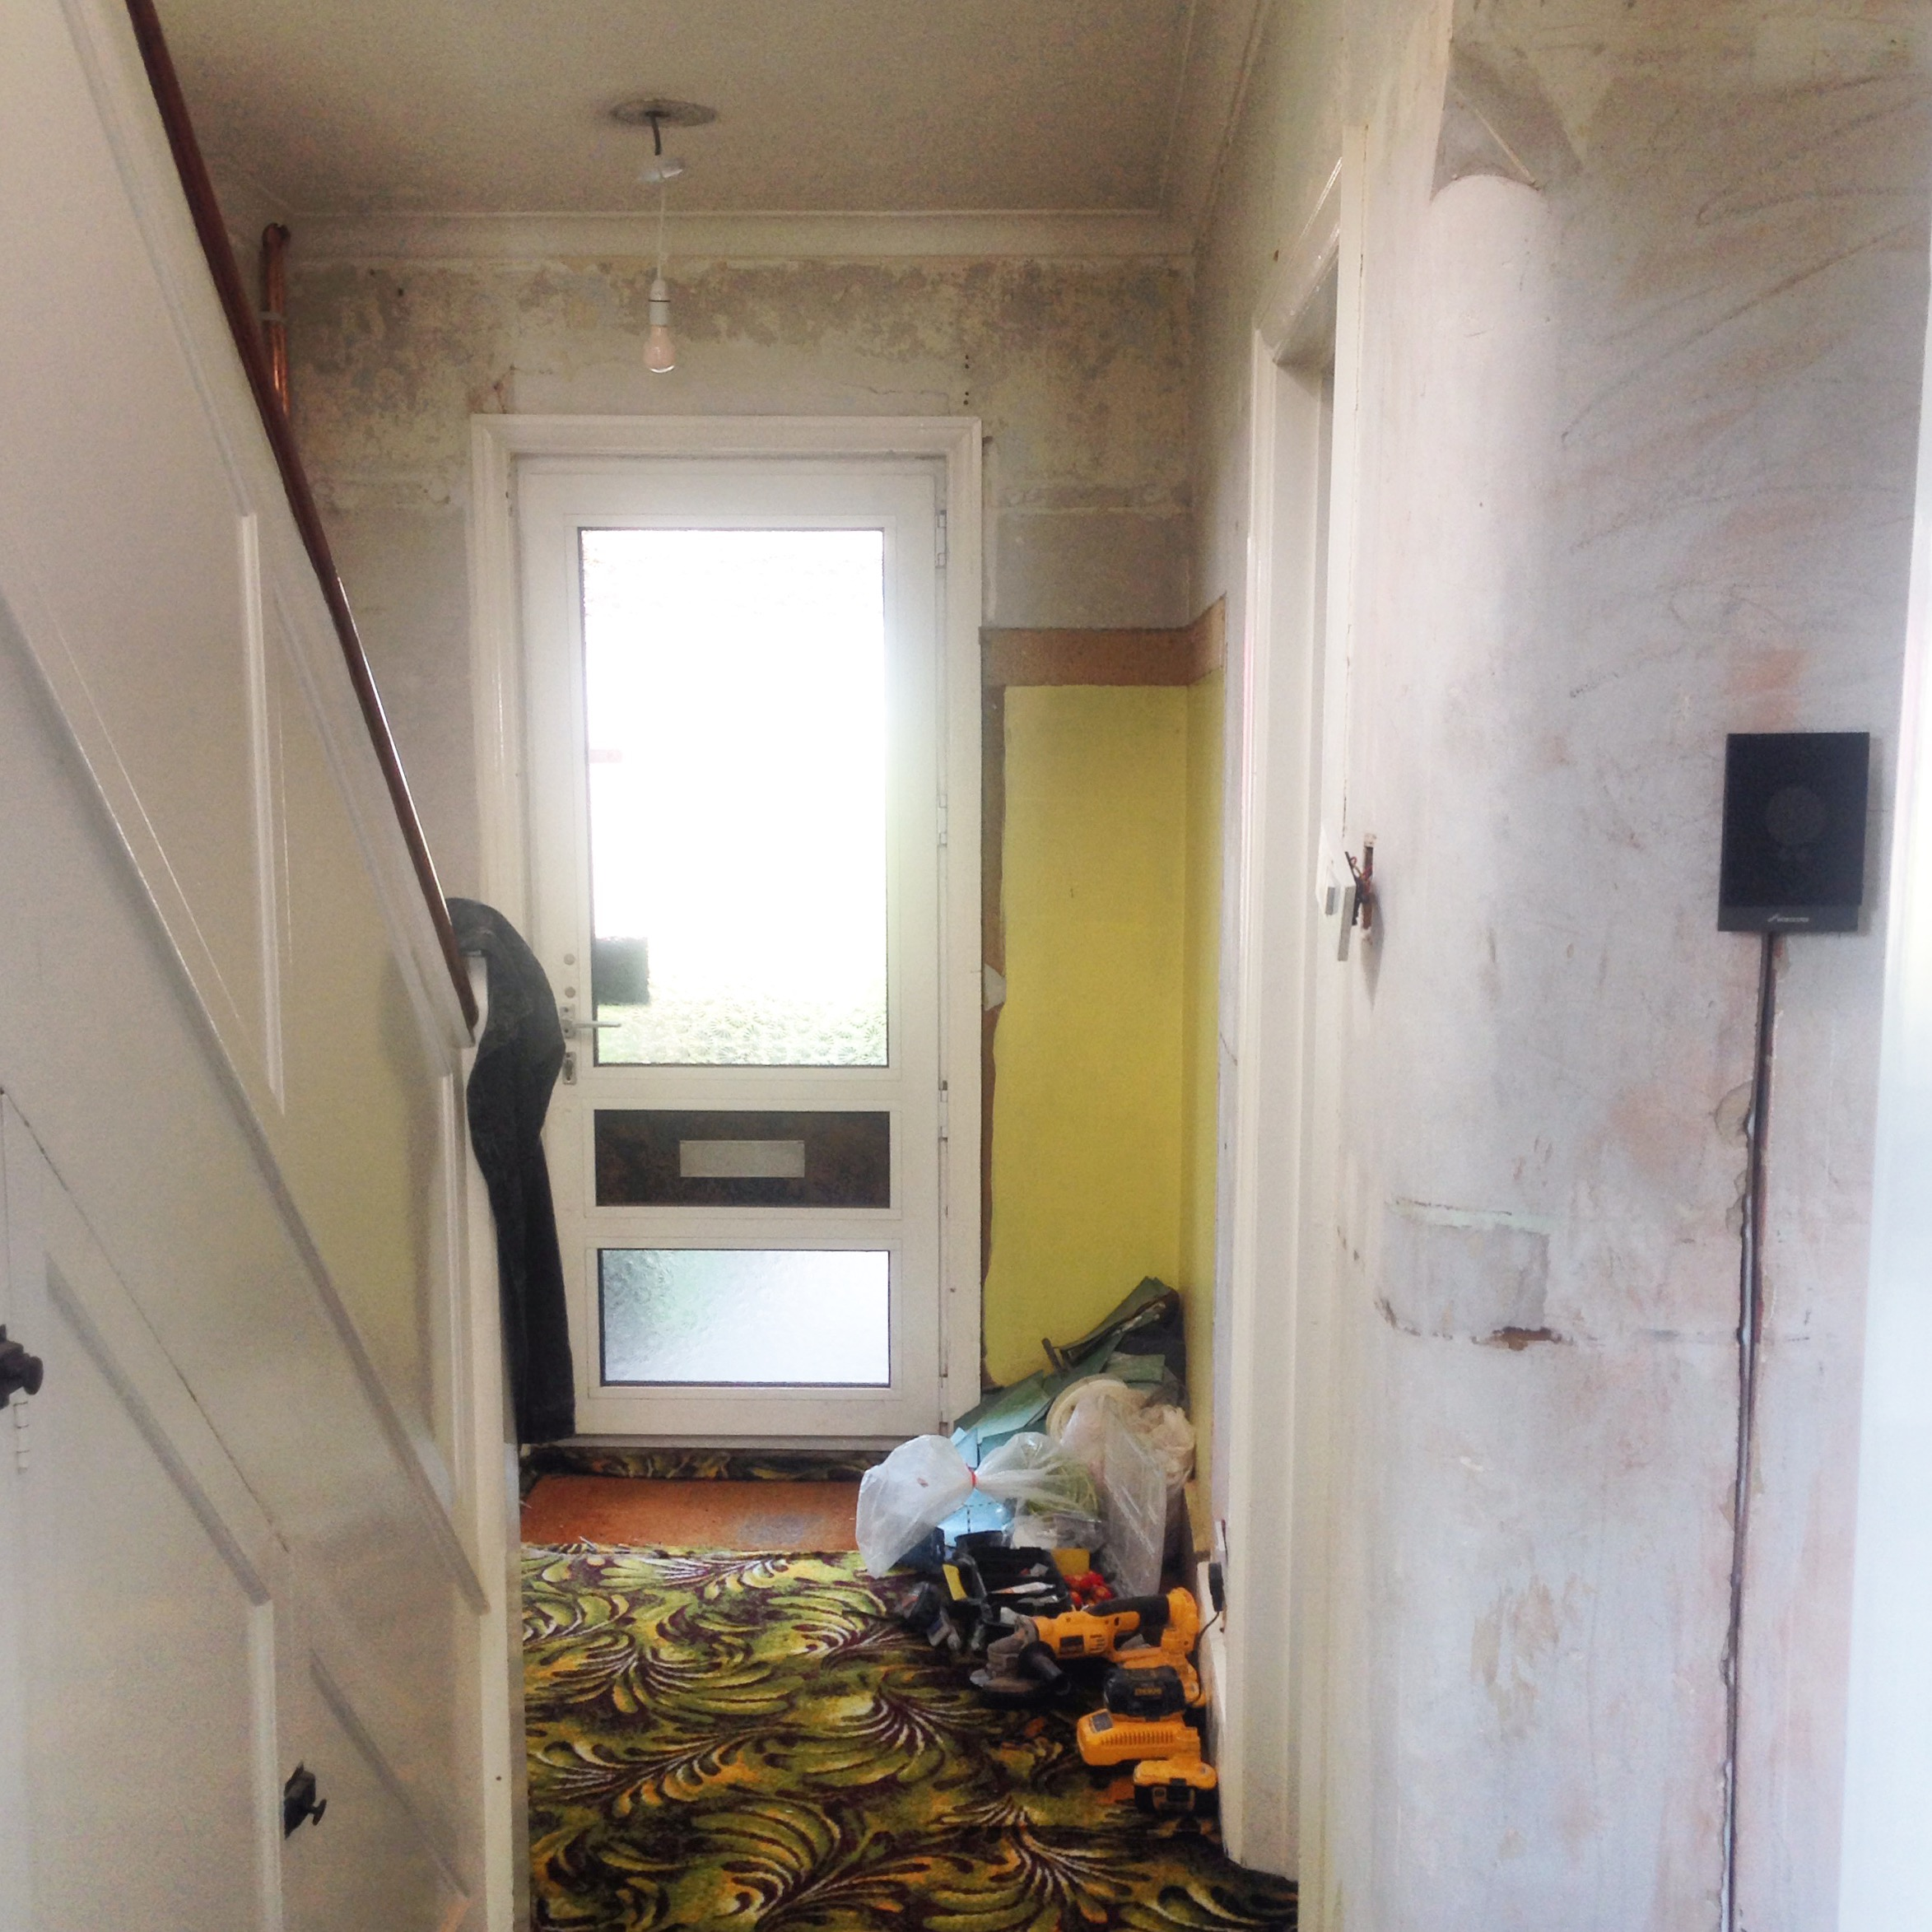 THIS SHOT WAS PRE PLASTERING OUR HALLWAY, MY GOD WHAT A MESS